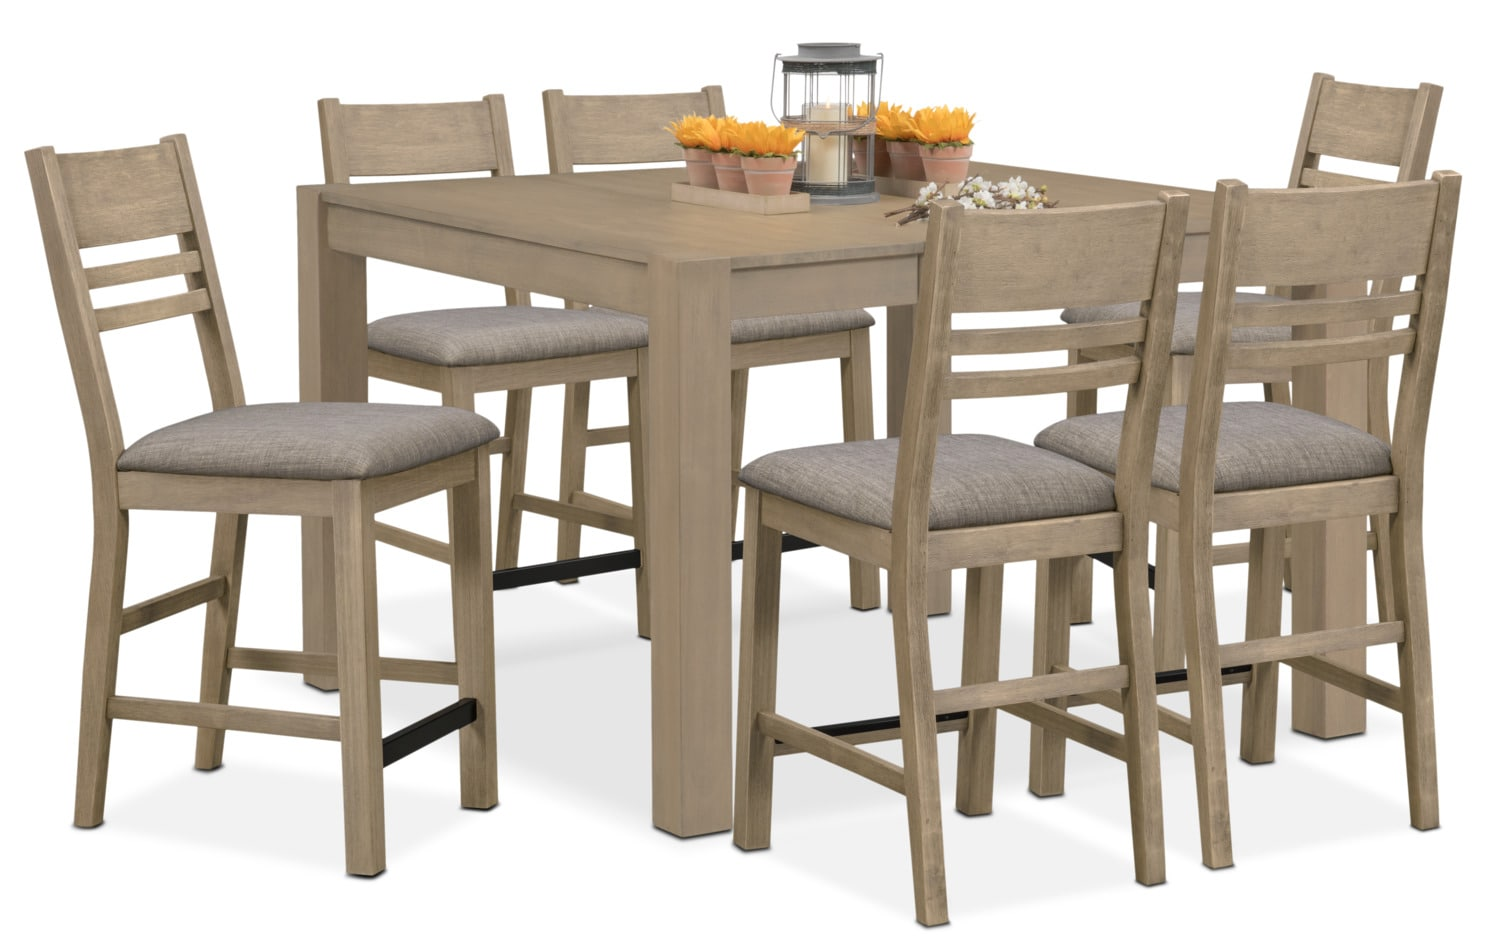 Cucina Letters Kitchen Decor, Tribeca Counter Height Dining Table And 6 Dining Chairs Value City Furniture And Mattresses